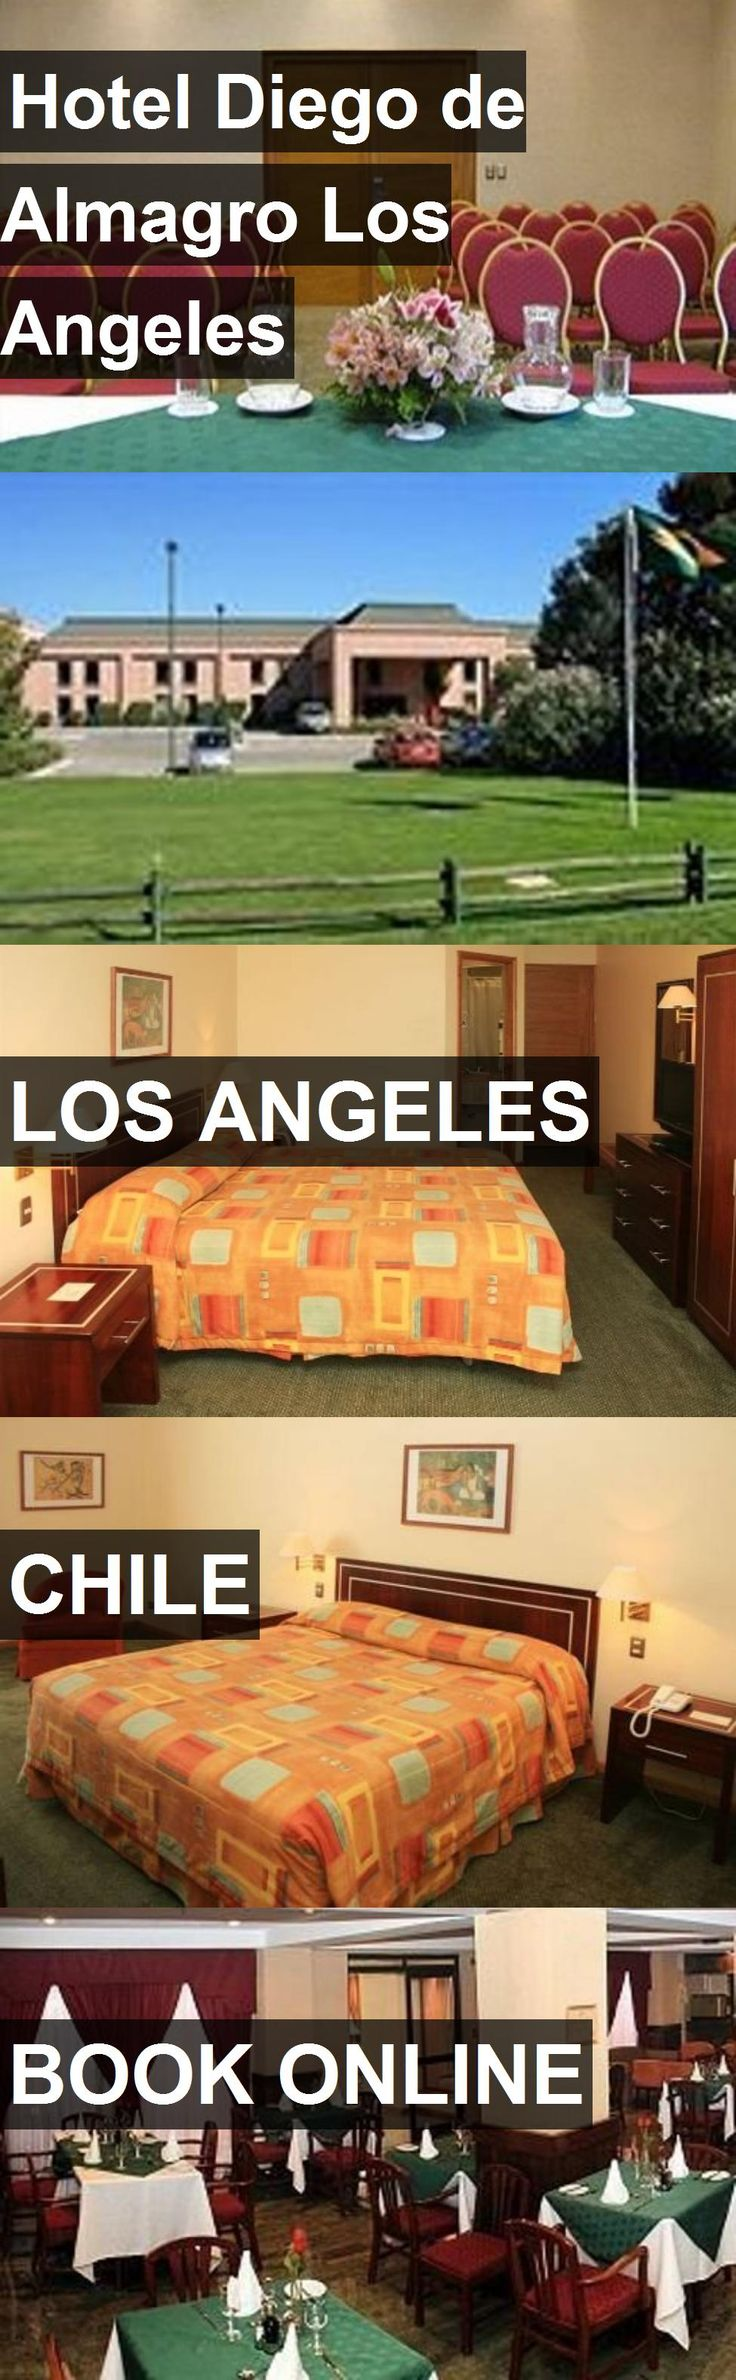 Hotel Hotel Diego de Almagro Los Angeles in Los Angeles, Chile. For more information, photos, reviews and best prices please follow the link. #Chile #LosAngeles #HotelDiegodeAlmagroLosAngeles #hotel #travel #vacation